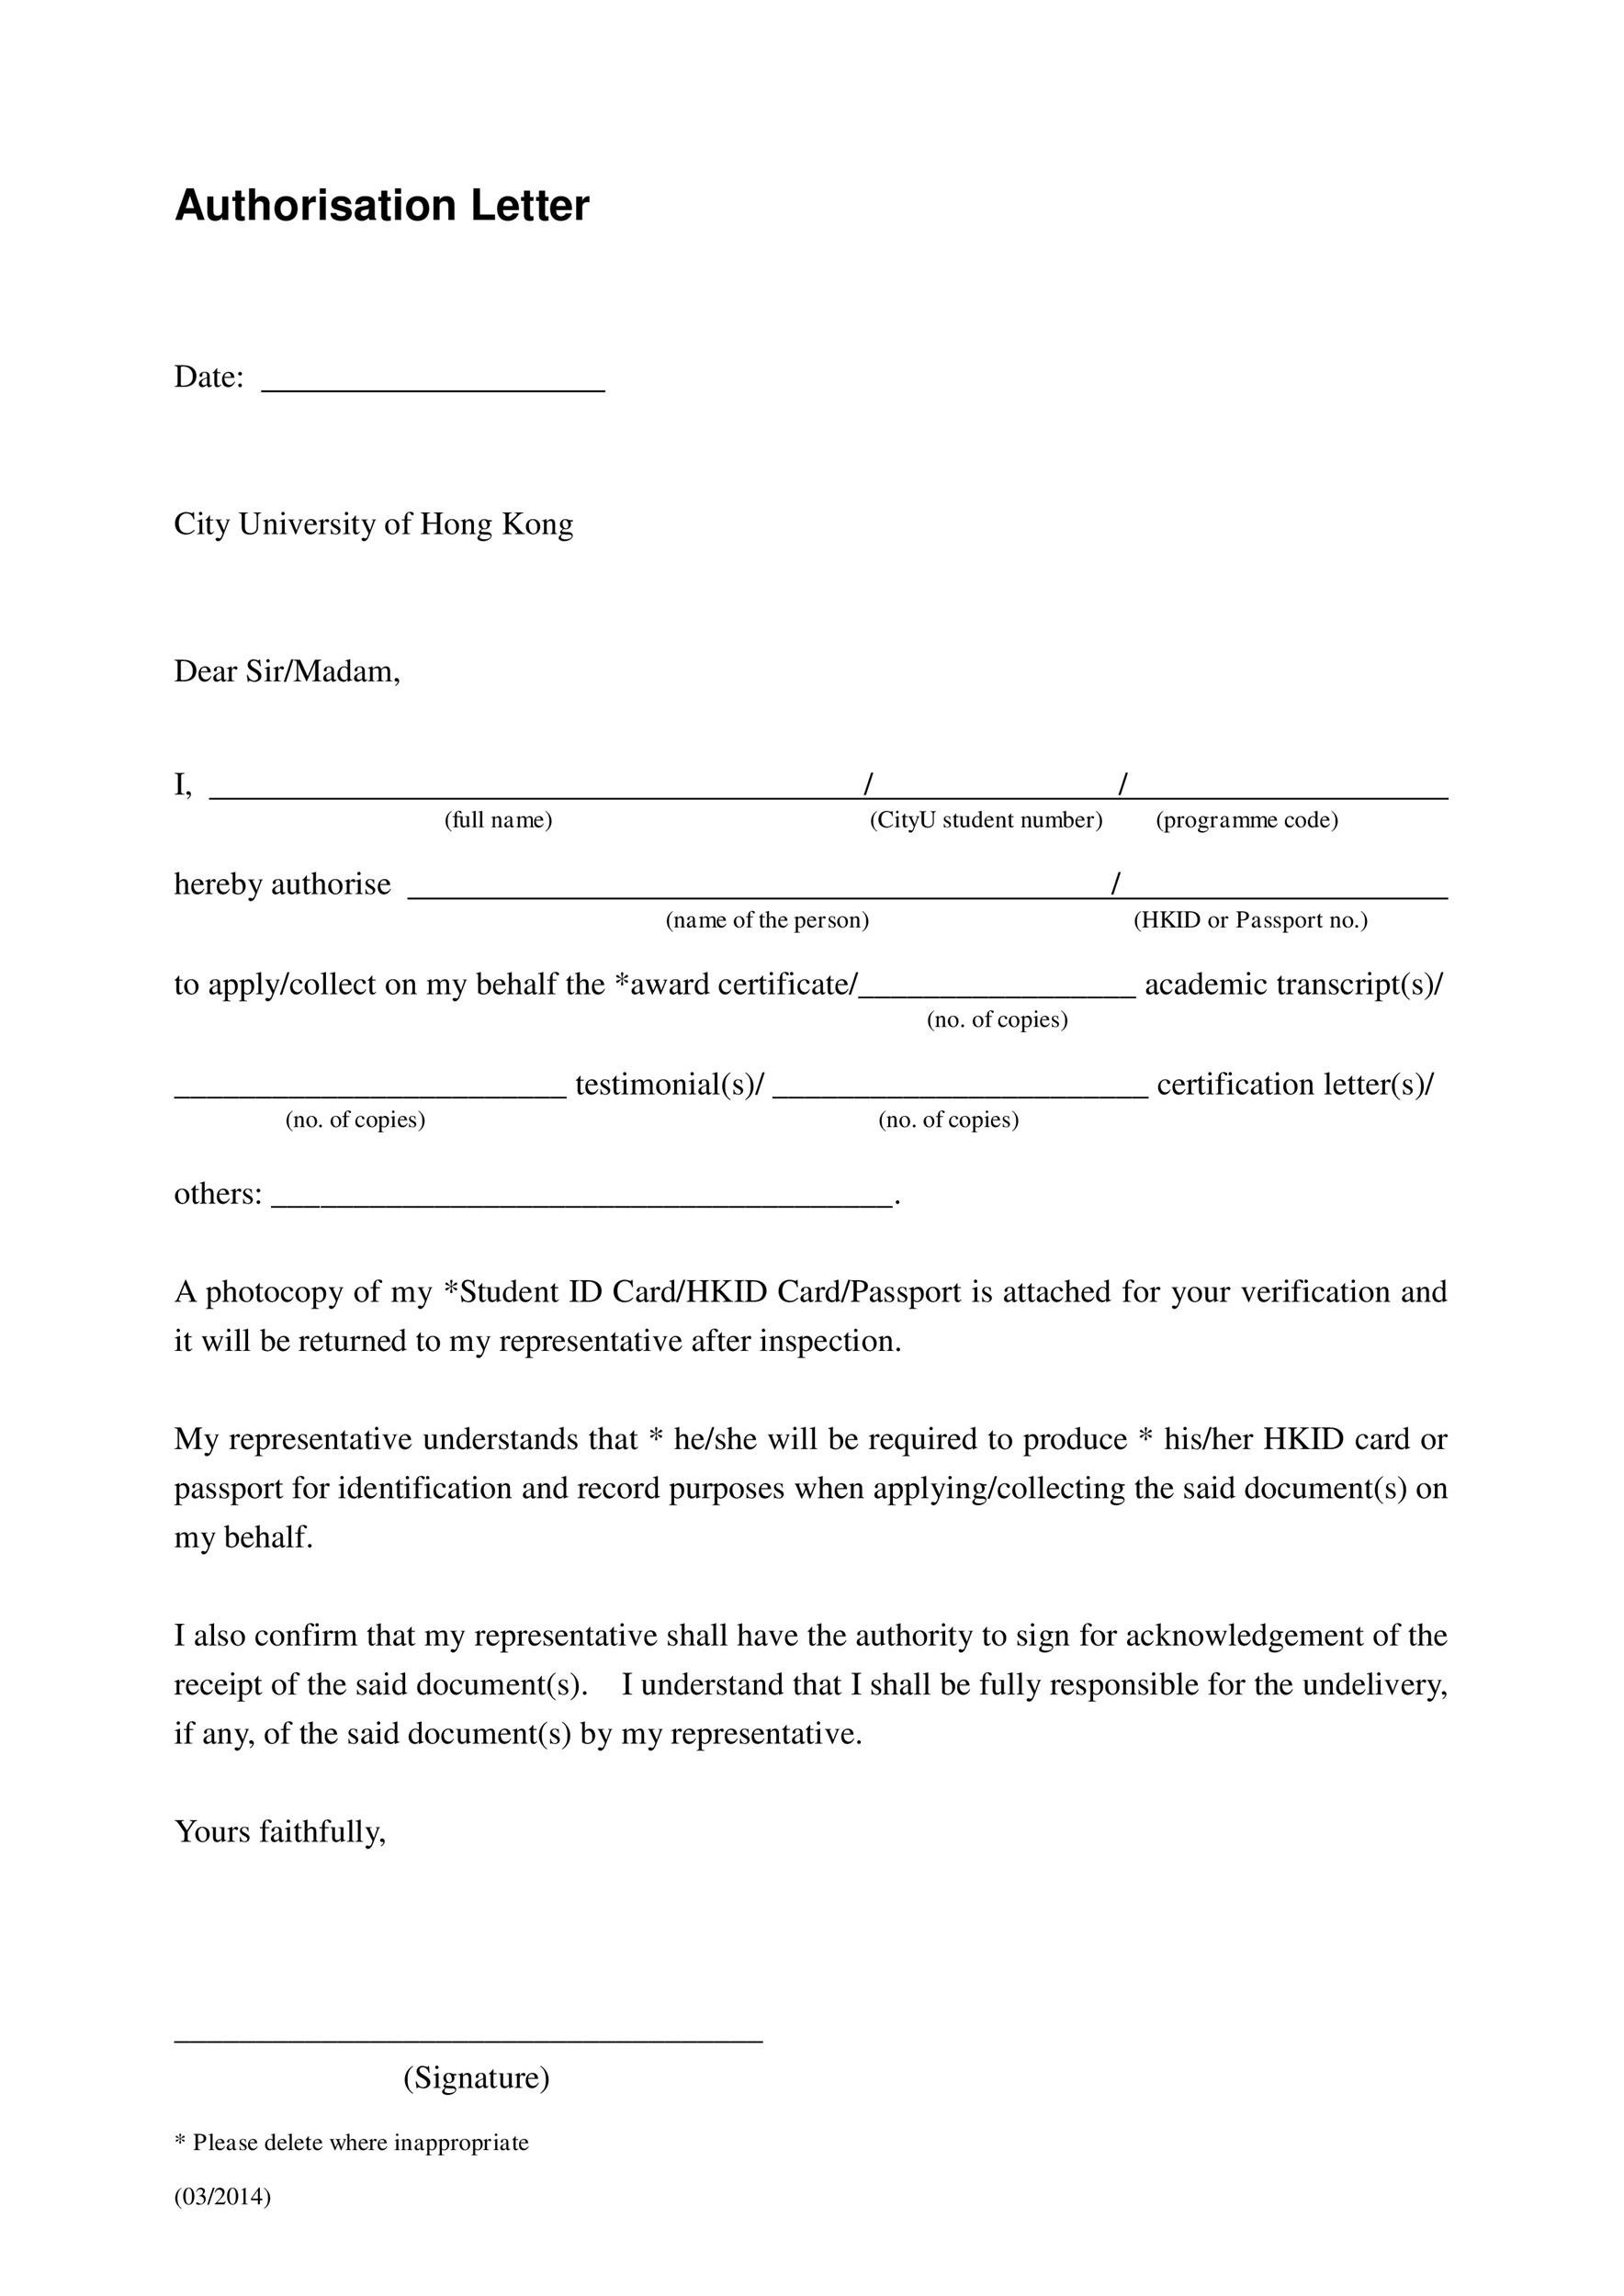 Authorization Letter 38